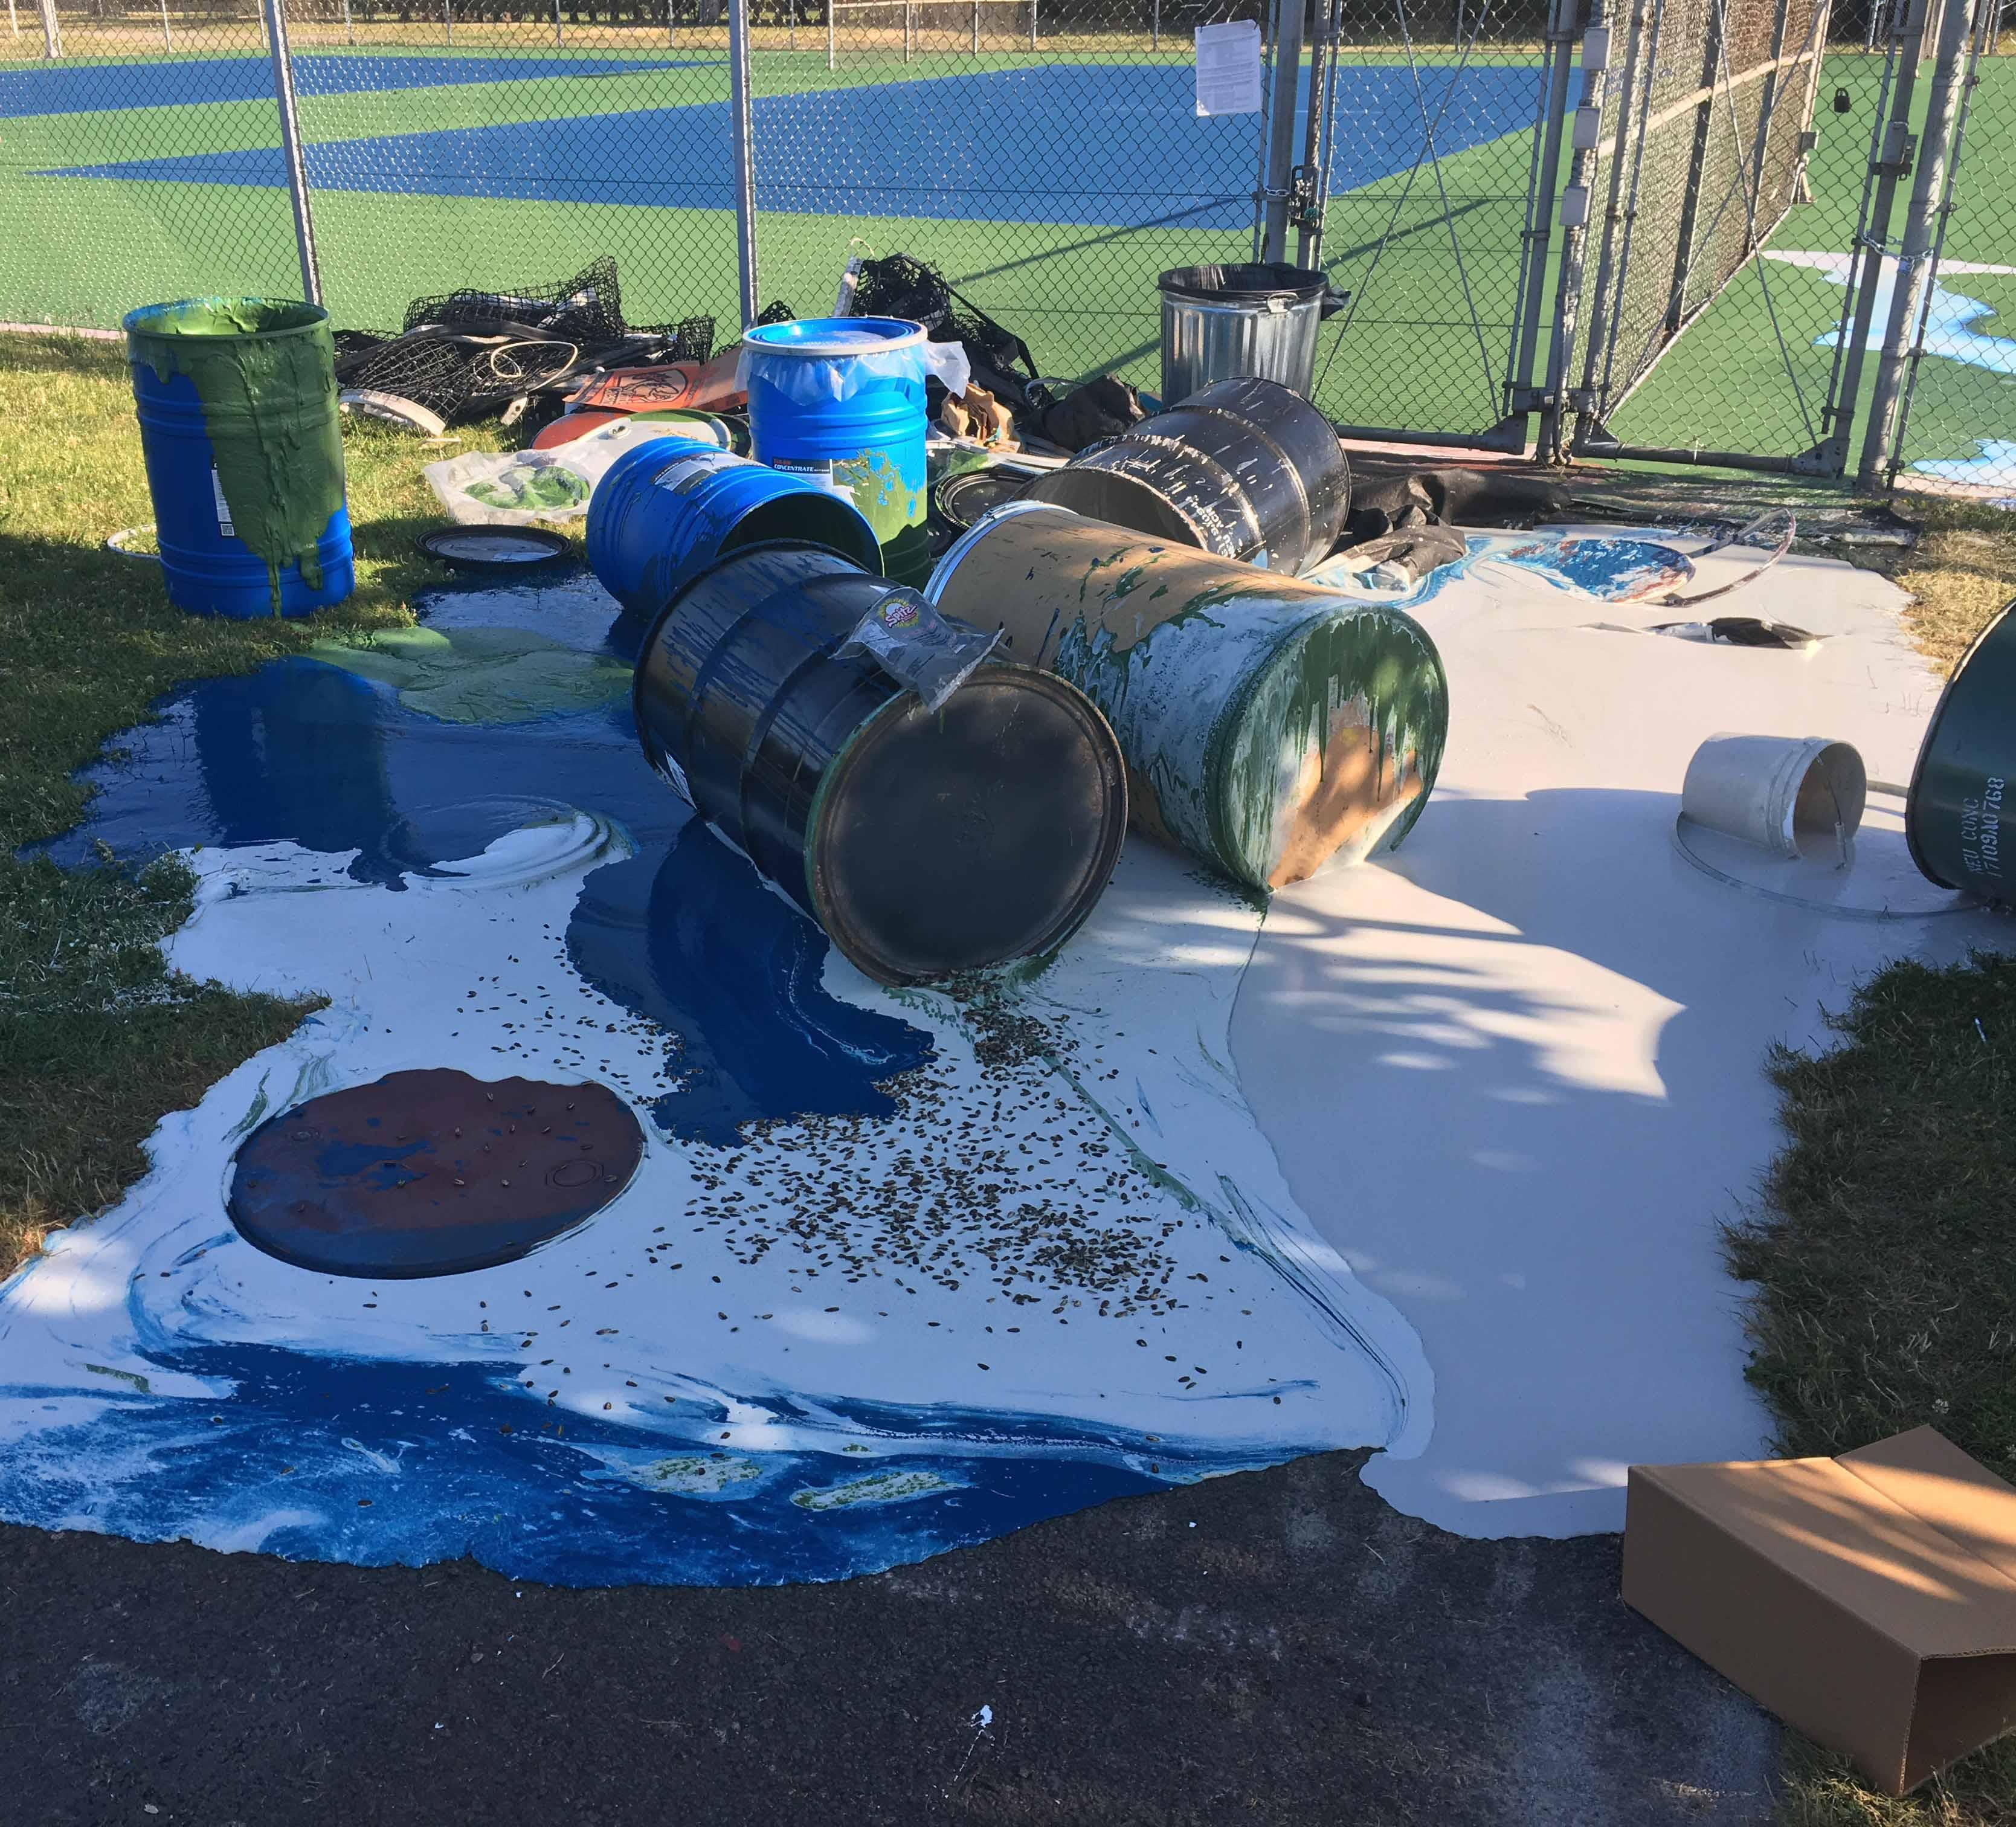 Police are looking for information after finding tennis courts at the Sheldon Community Center damaged by hundreds of gallons of paint. Investigators also found graffiti at the community center; Sheldon High School; Ron's Island Grill; and Hard Core Yoga. Police said the damage was likely done after 5 p.m. Thursday, June 29, and before 6:30 a.m. on June 30. Anyone who saw suspicious behavior in the area is asked to call (541) 682-5111.